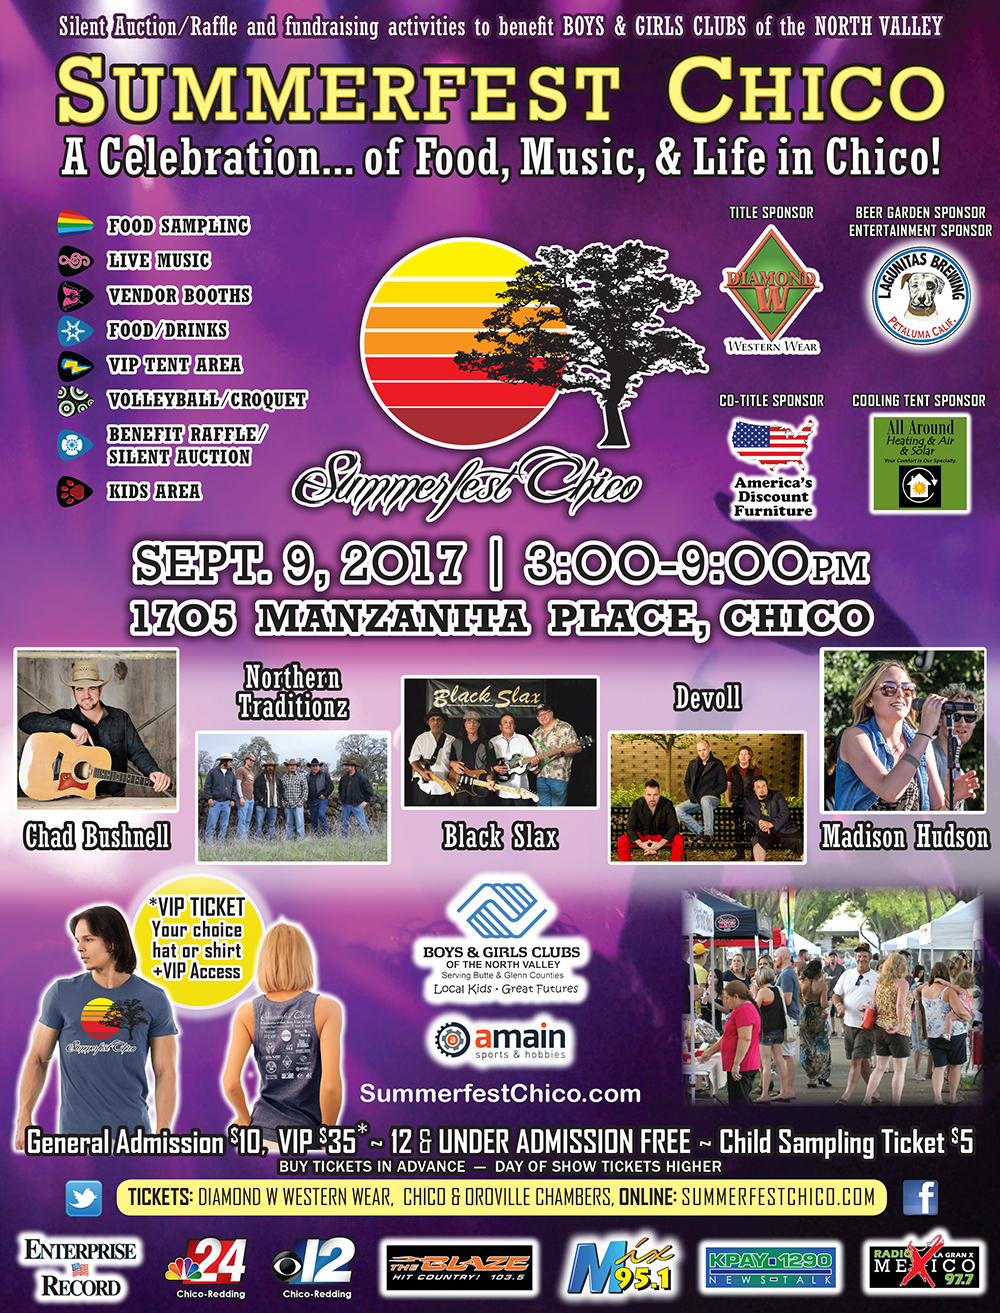 Only two weeks away. Do you have your tickets yet? If not get to it.  General Admission-$10 in advance, $15 at the gate  VIP- $35 in advance, $40 at the gate   https://www.purplepass.com/#158857